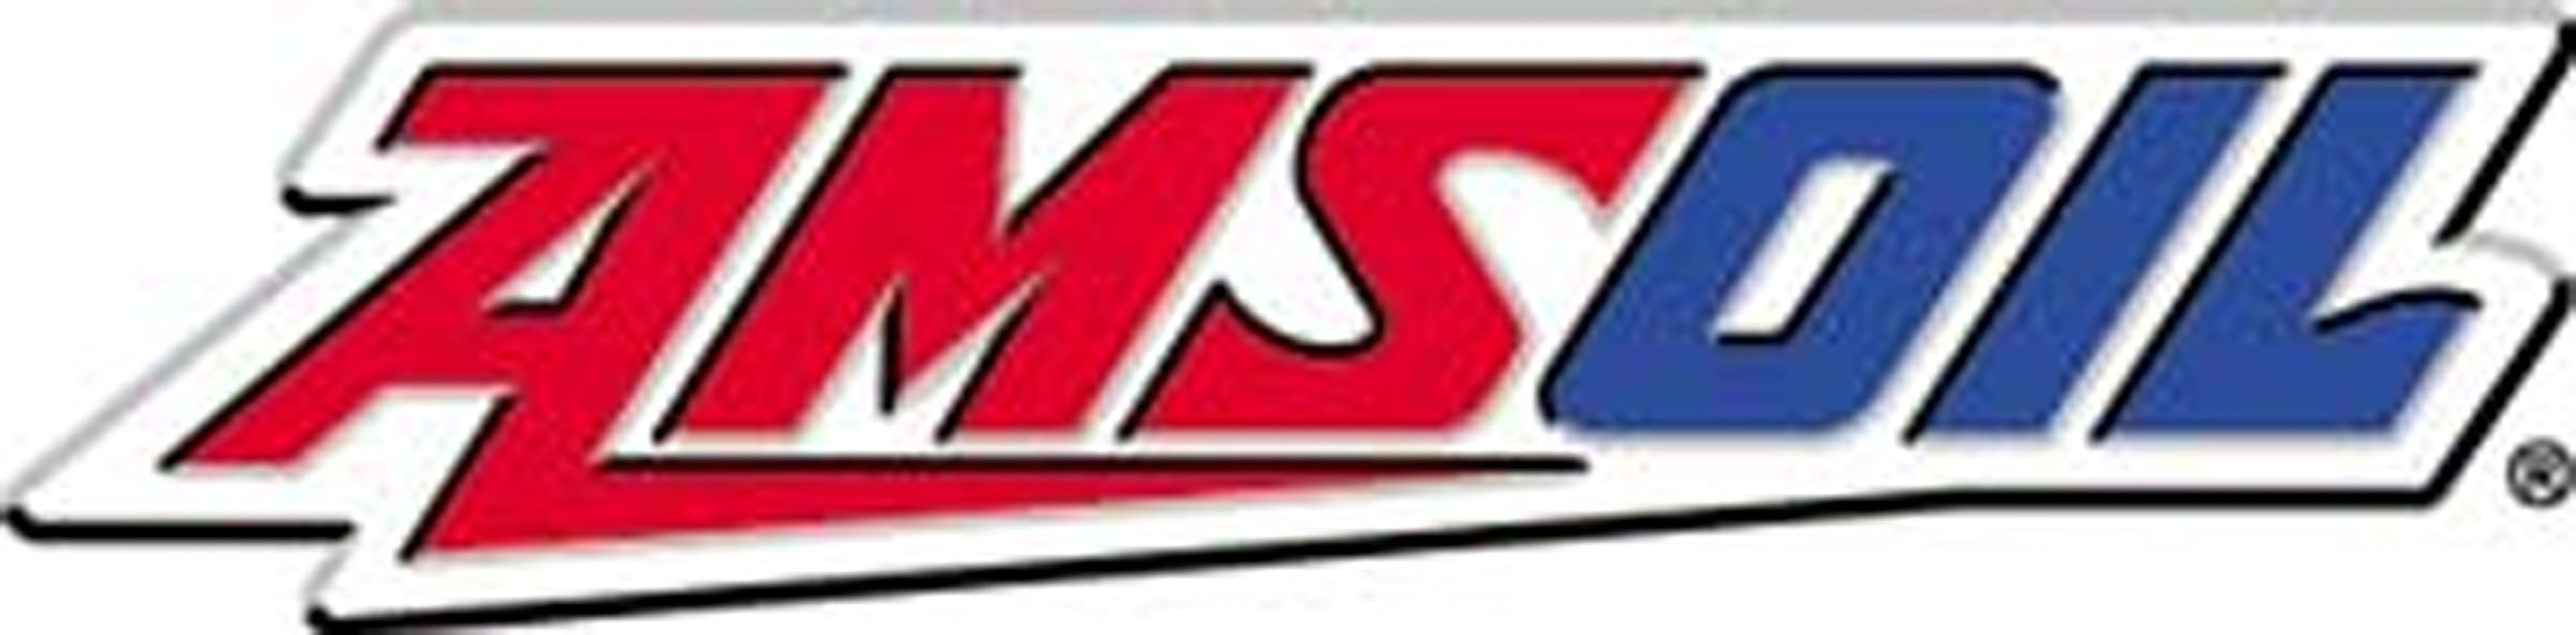 "AMSOIL 7"" Decal"